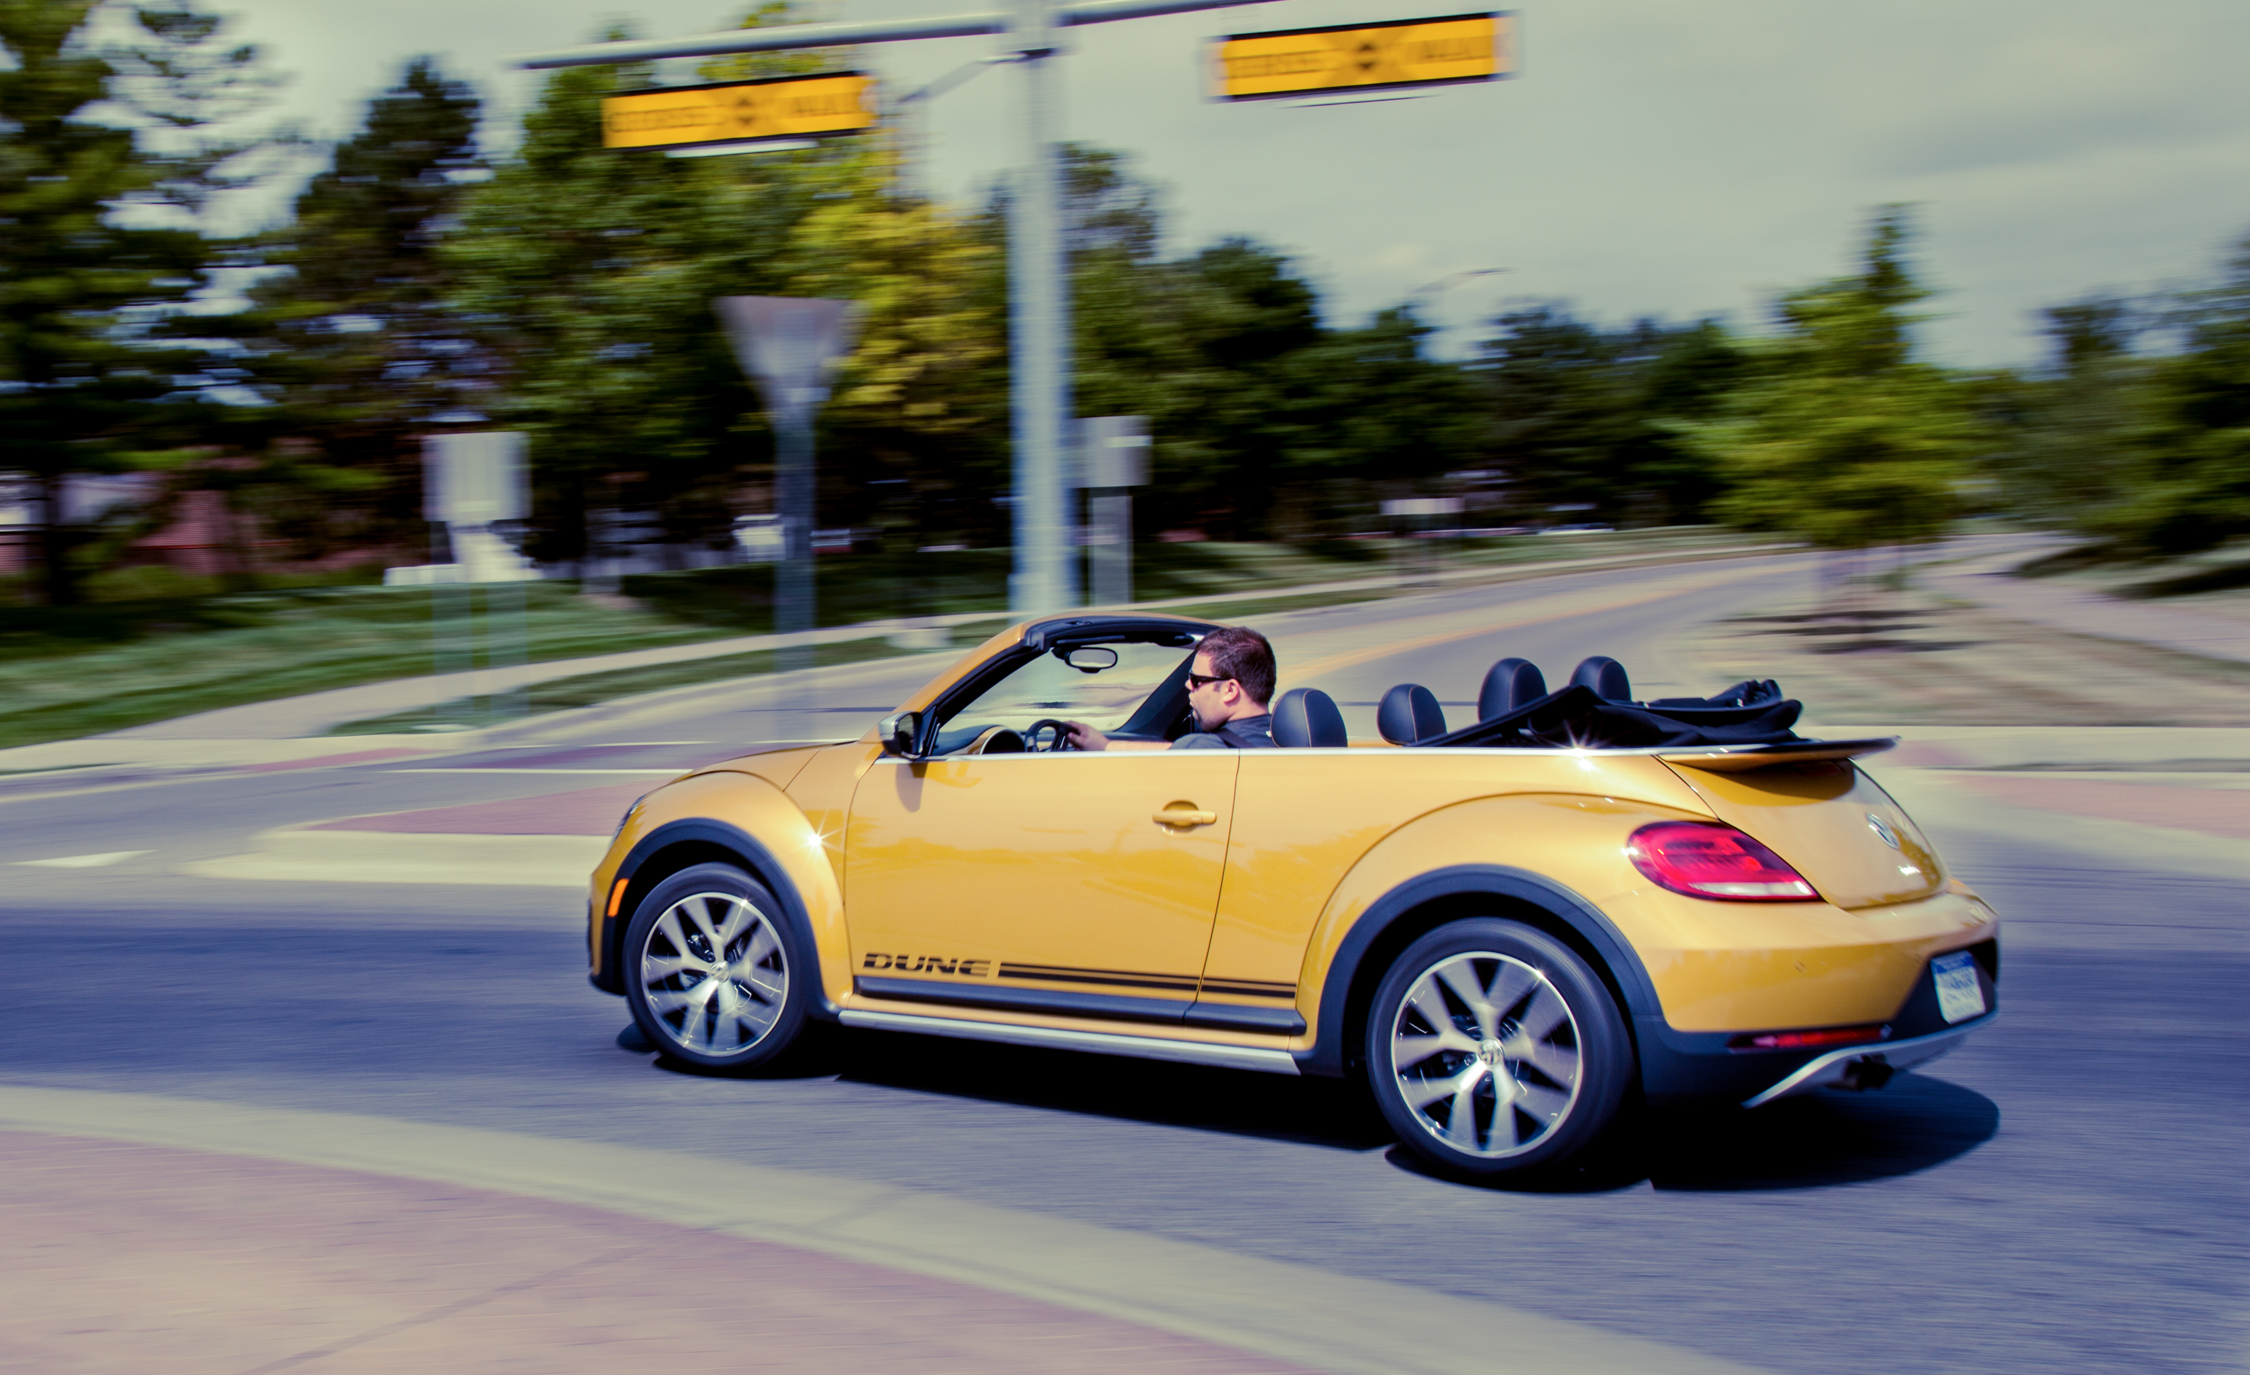 2017 Volkswagen Beetle Dune Convertible Test Drive Opened Roof (Photo 13 of 19)